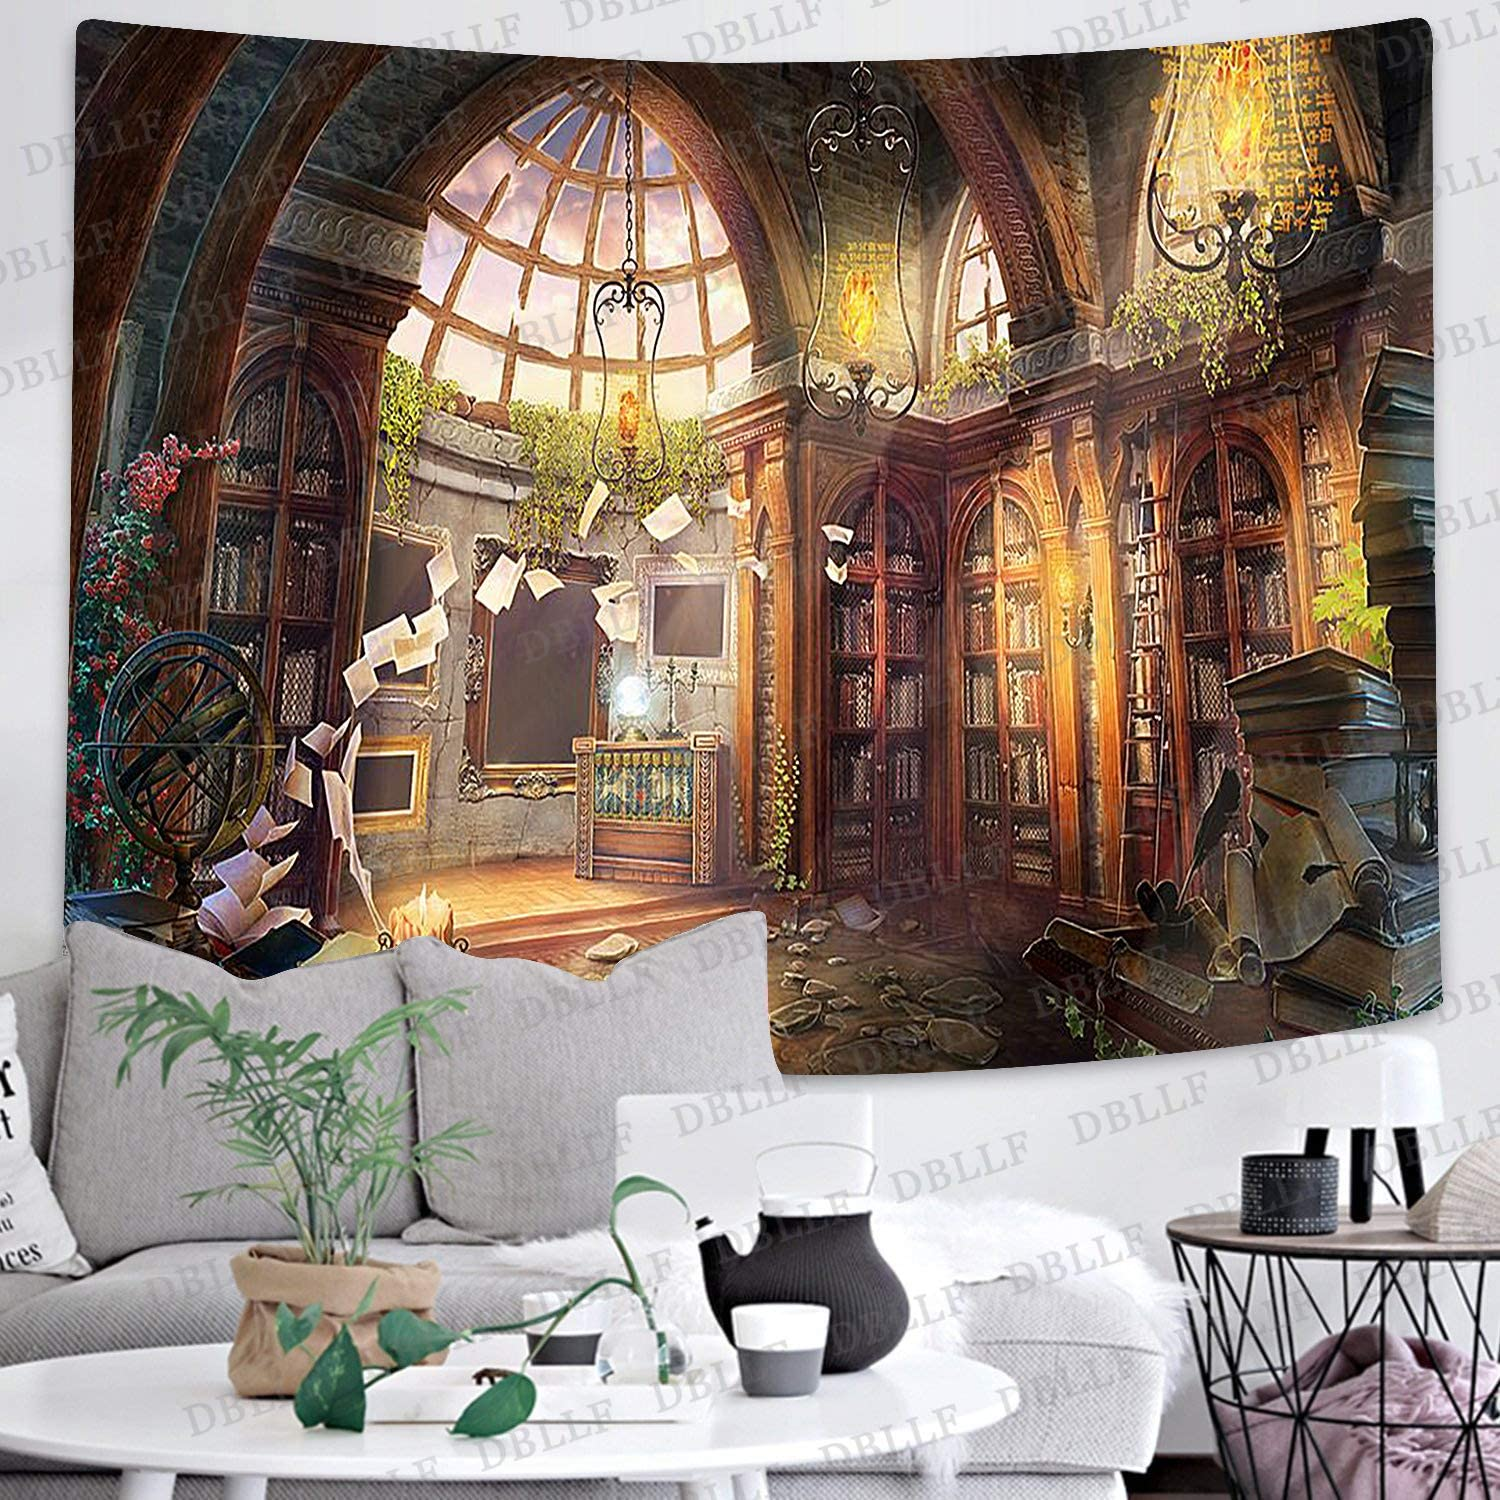 Dbllf Medieval Home Decoration Tapestry Game Background Theme Tapestry Scattered Books And Bookshelves Tapestry For Bedroom Living Room Dorm 80x60 Inches Dbzy1347 Amazon Ca Home Kitchen